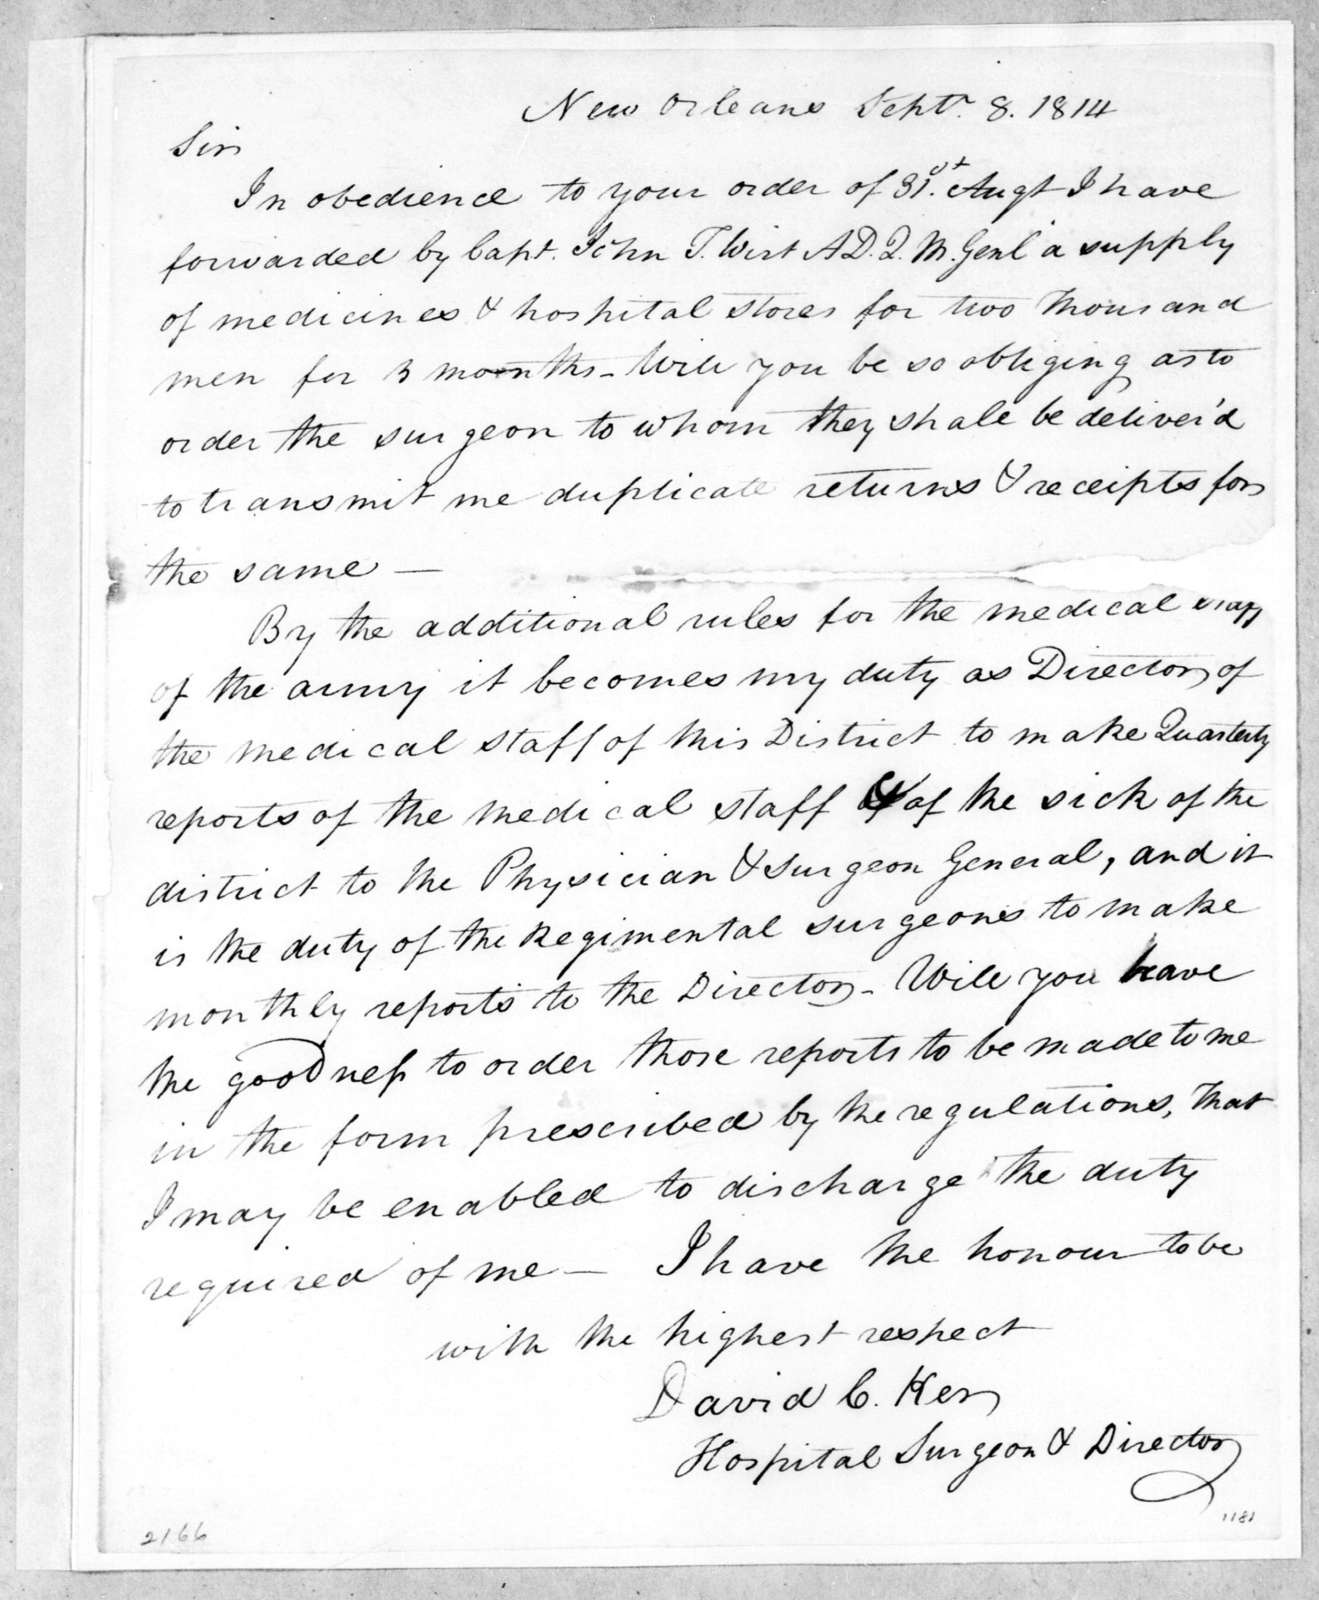 David C. Ker to Andrew Jackson, September 8, 1814